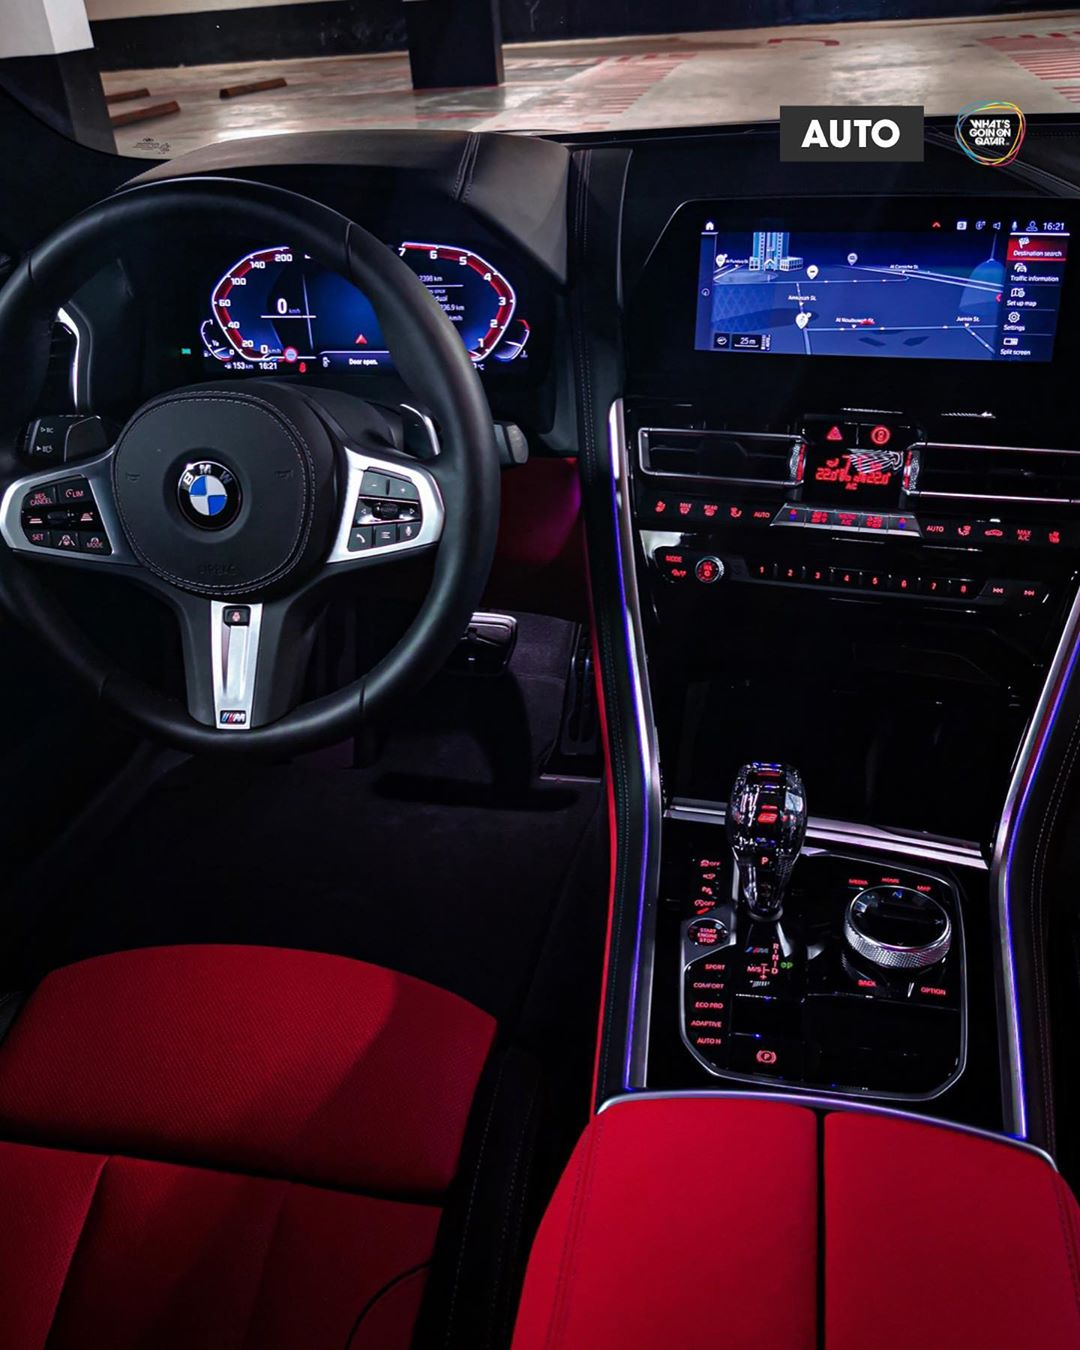 The 850i M